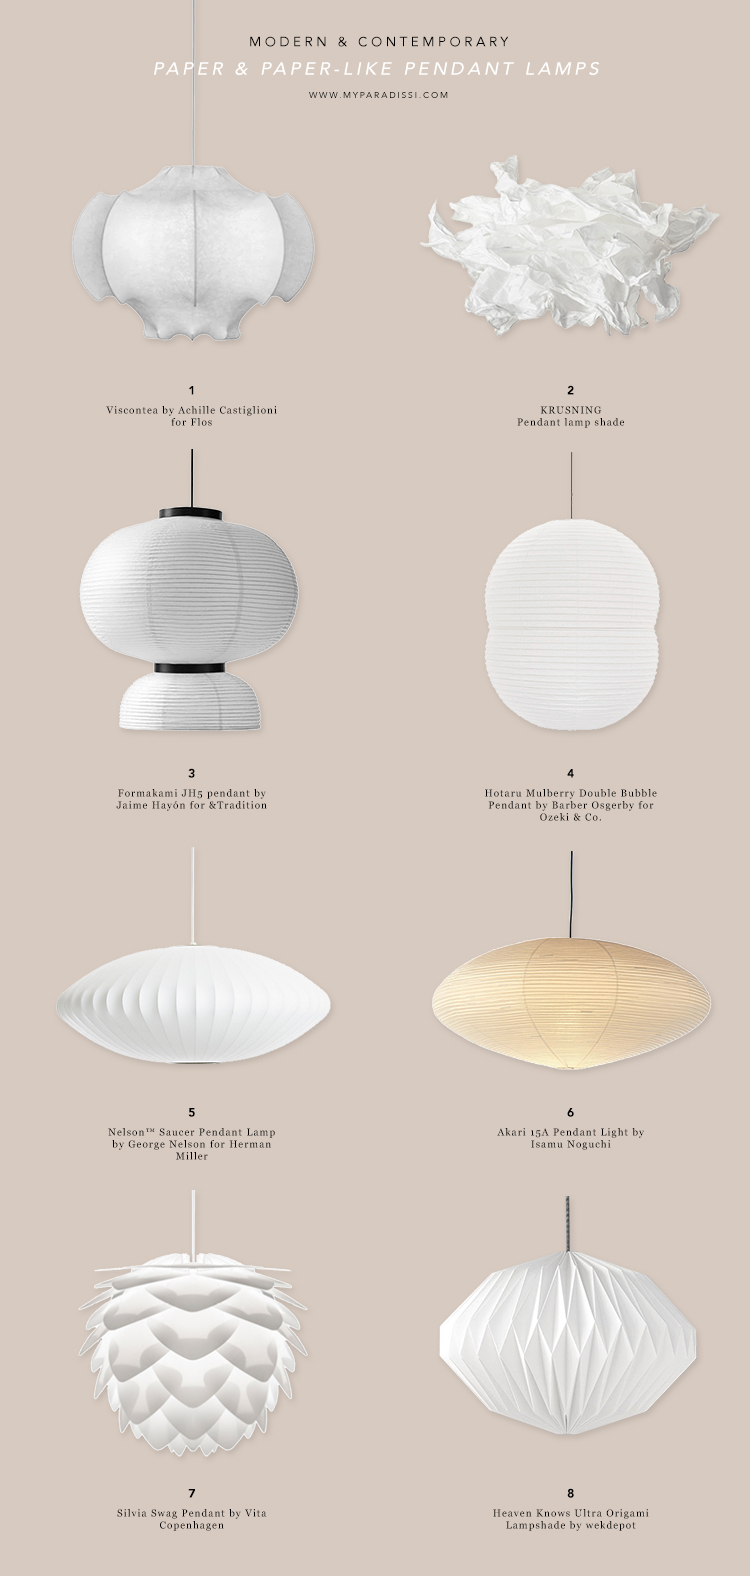 Contemporary ceiling lighting, modern ceiling lighting, designer ceiling lamps, paper lantern pendant lamps, sculptural pendant lamps, origami pendant lamps, rice paper lamps